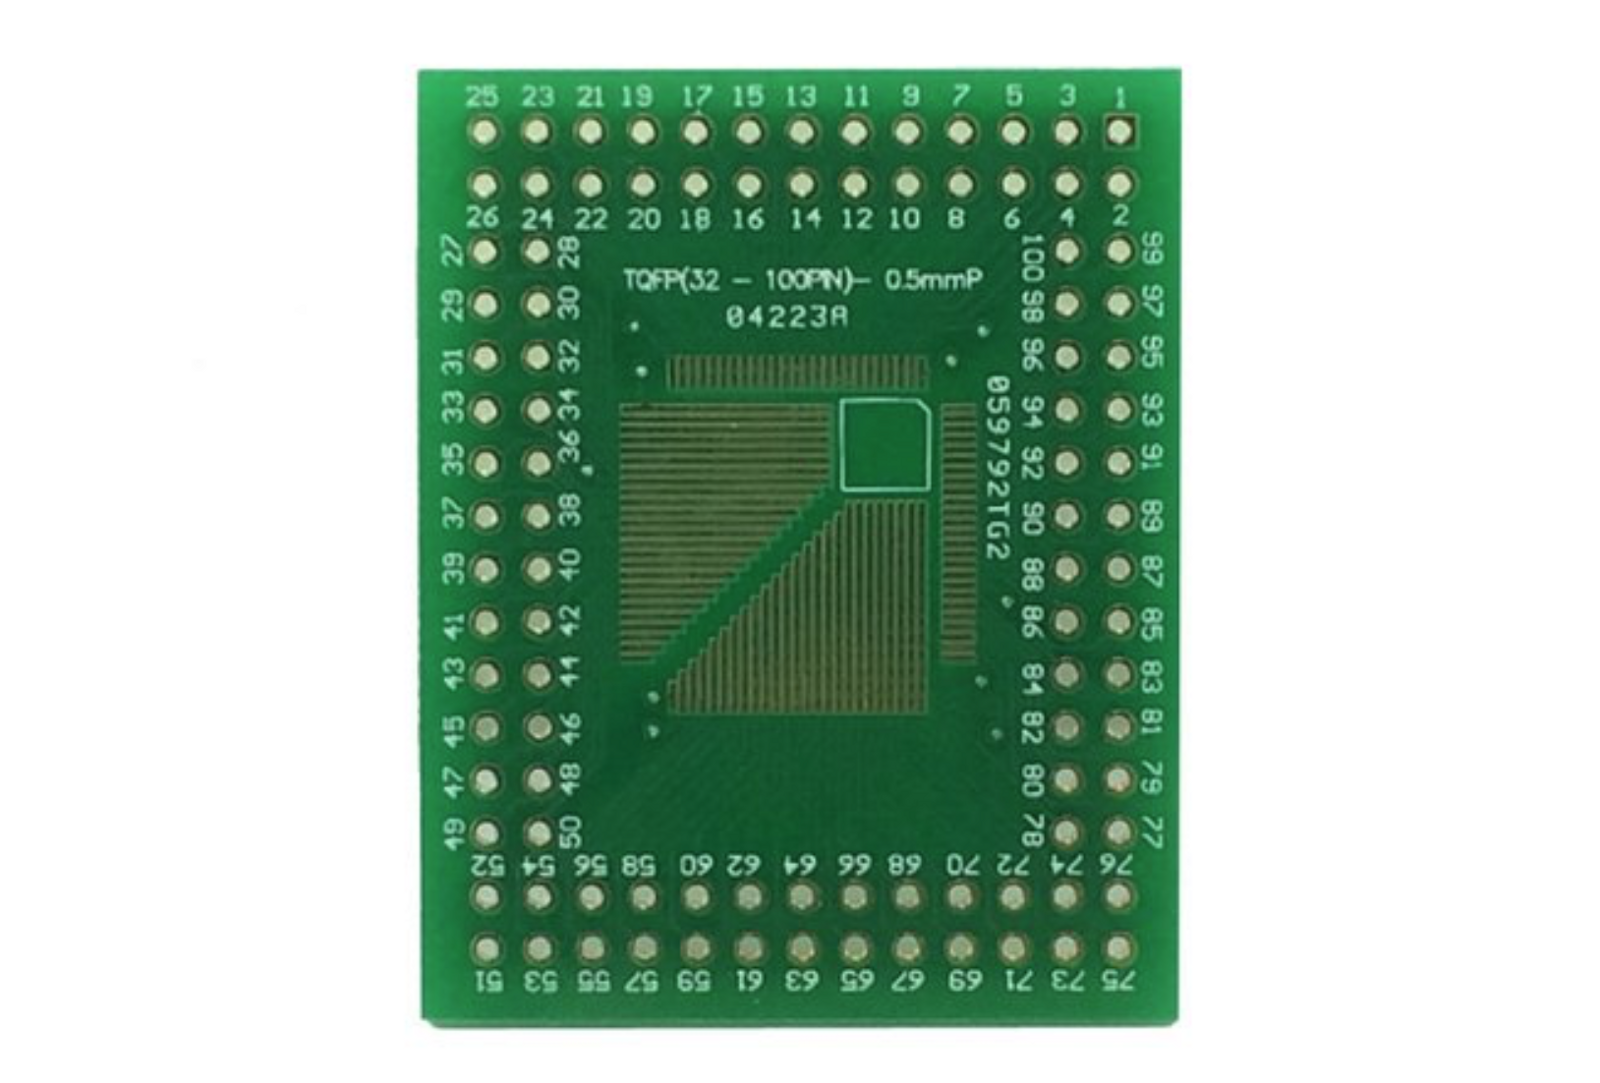 Surface Mount Electronics For Hobbyists Easier Than You Think Make Your Own Circuit Online I Intended To Solder A Qfp Chip On The Kicad Proto Pcb Board Which May Recall Looks Like This